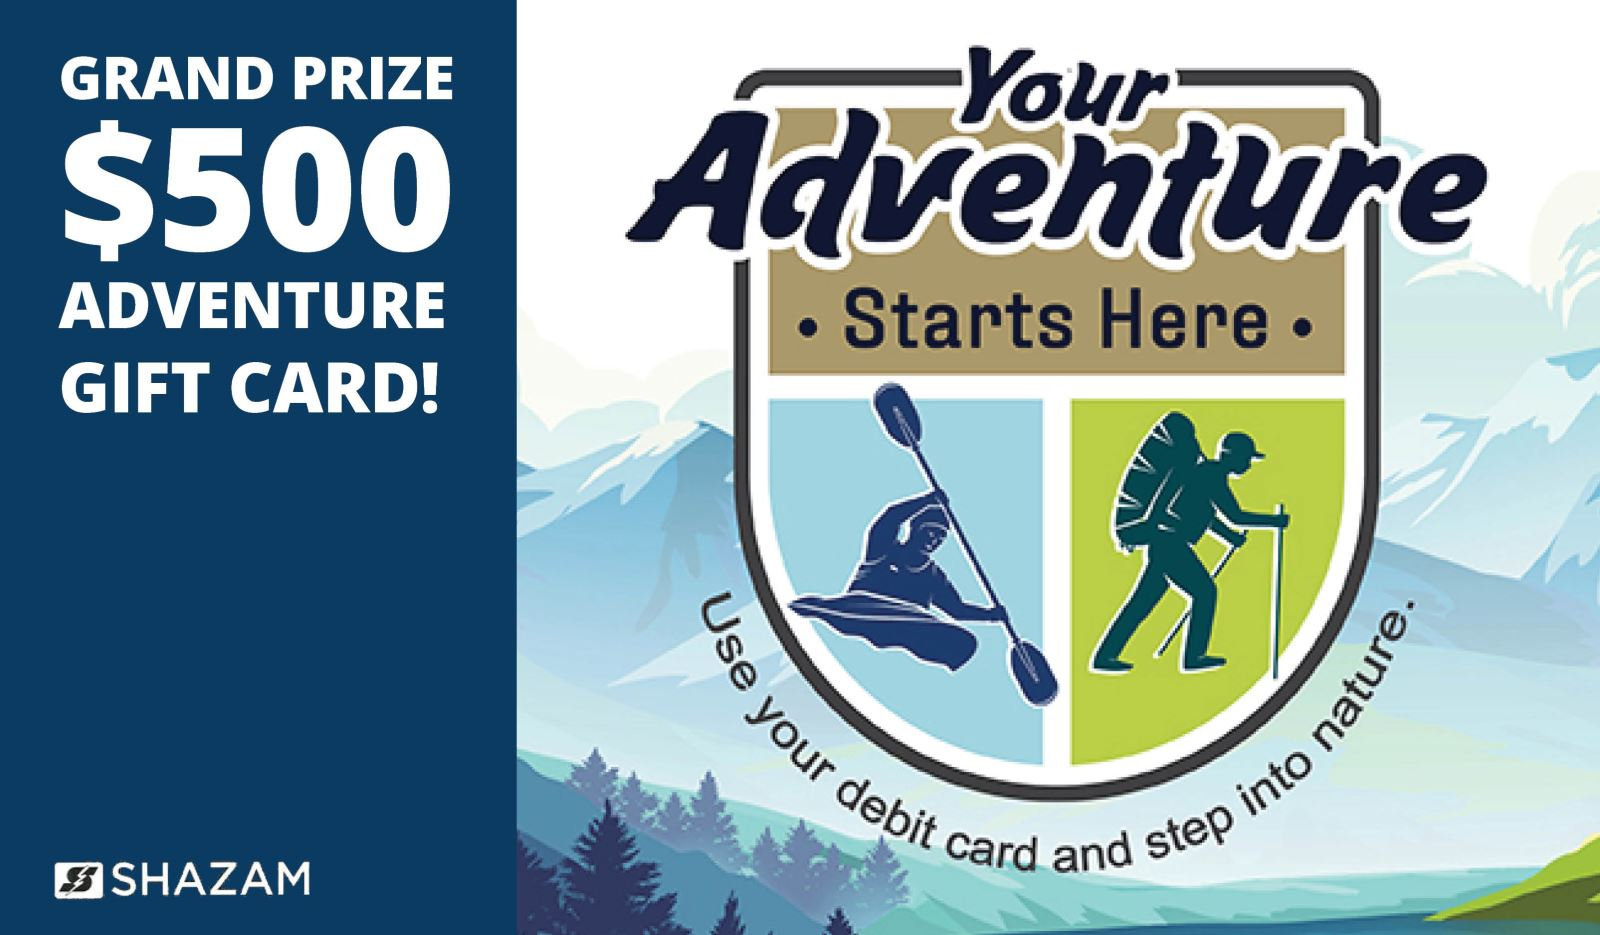 Your Adventure Starts Here Grand prize $500 Adventure Gift Card